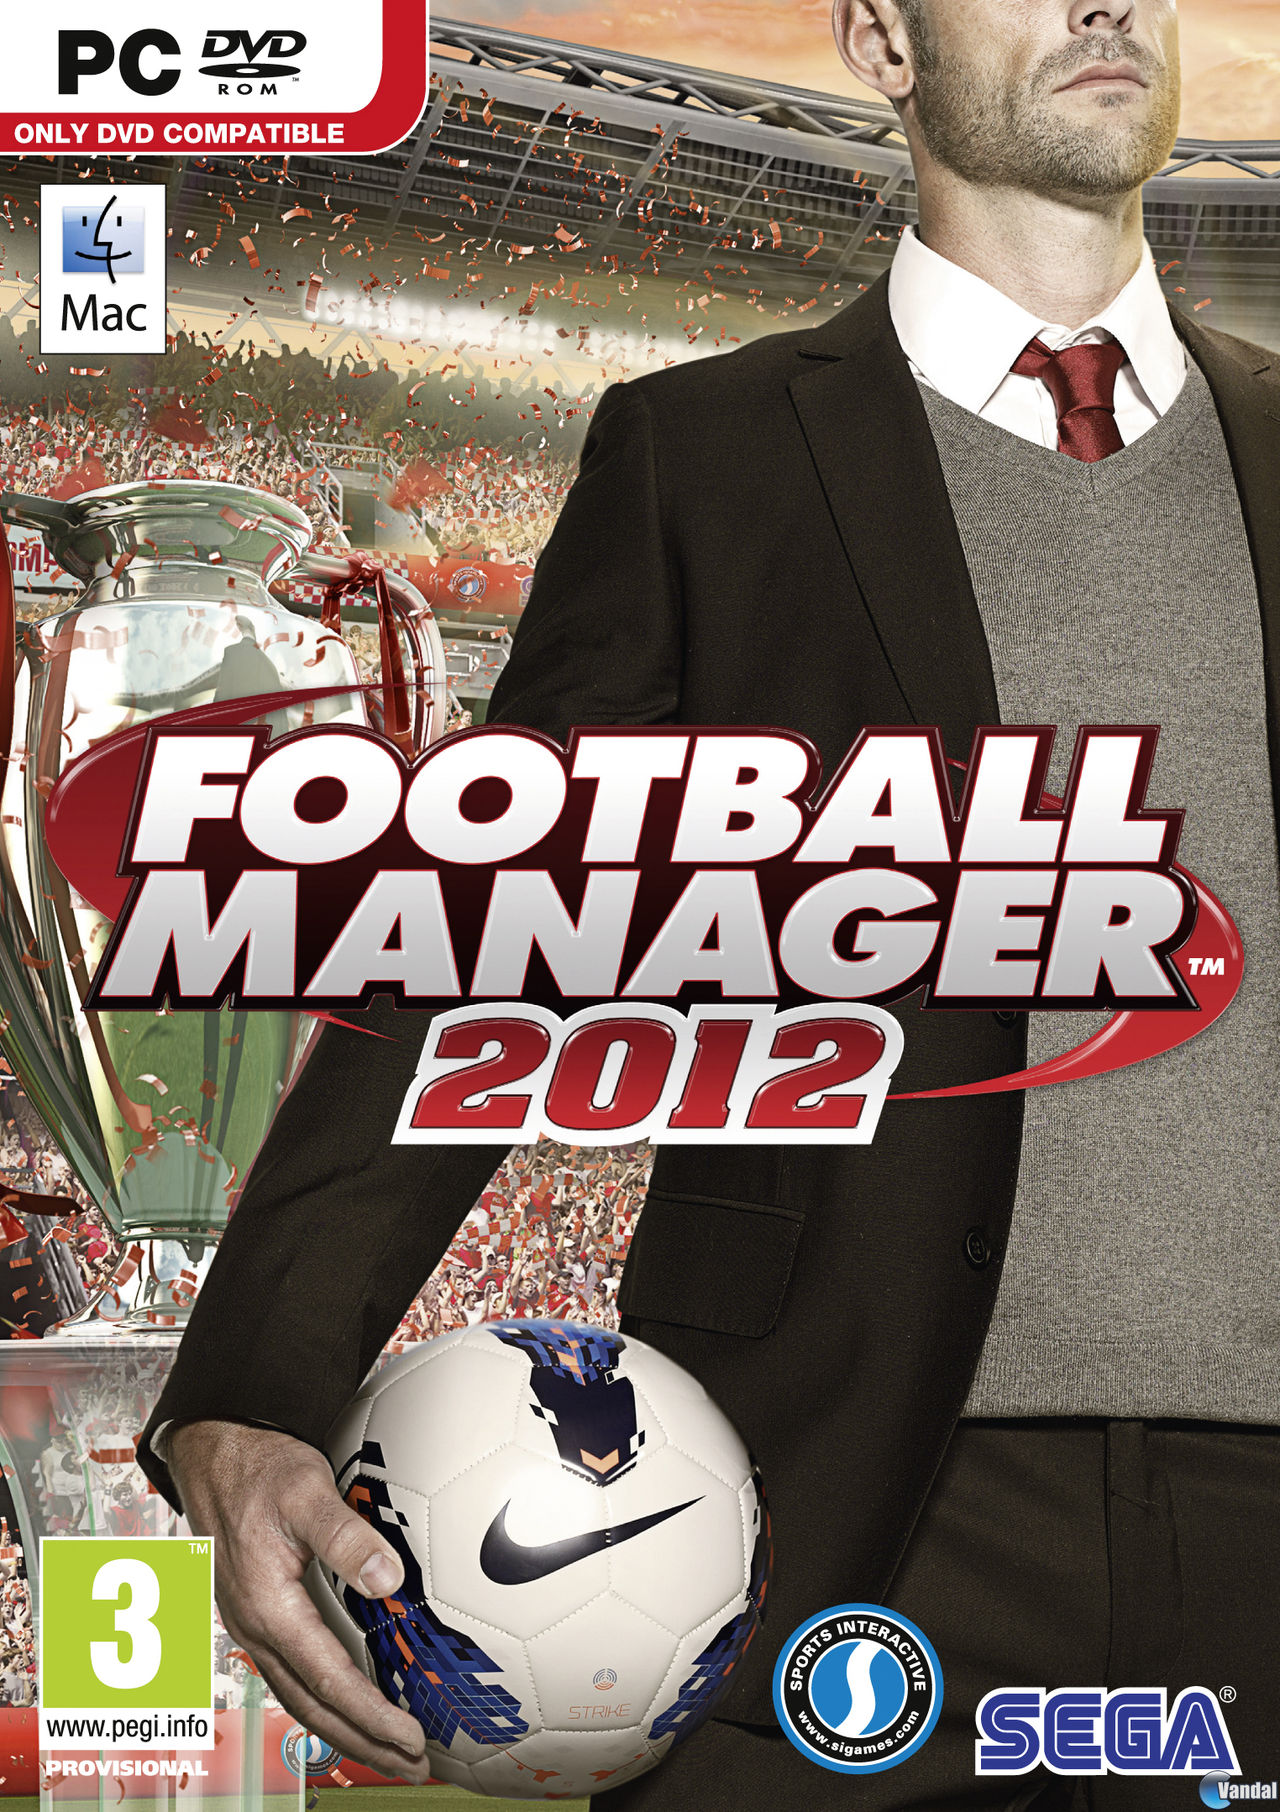 (Preview) Football Manager 2012 201181515515_1